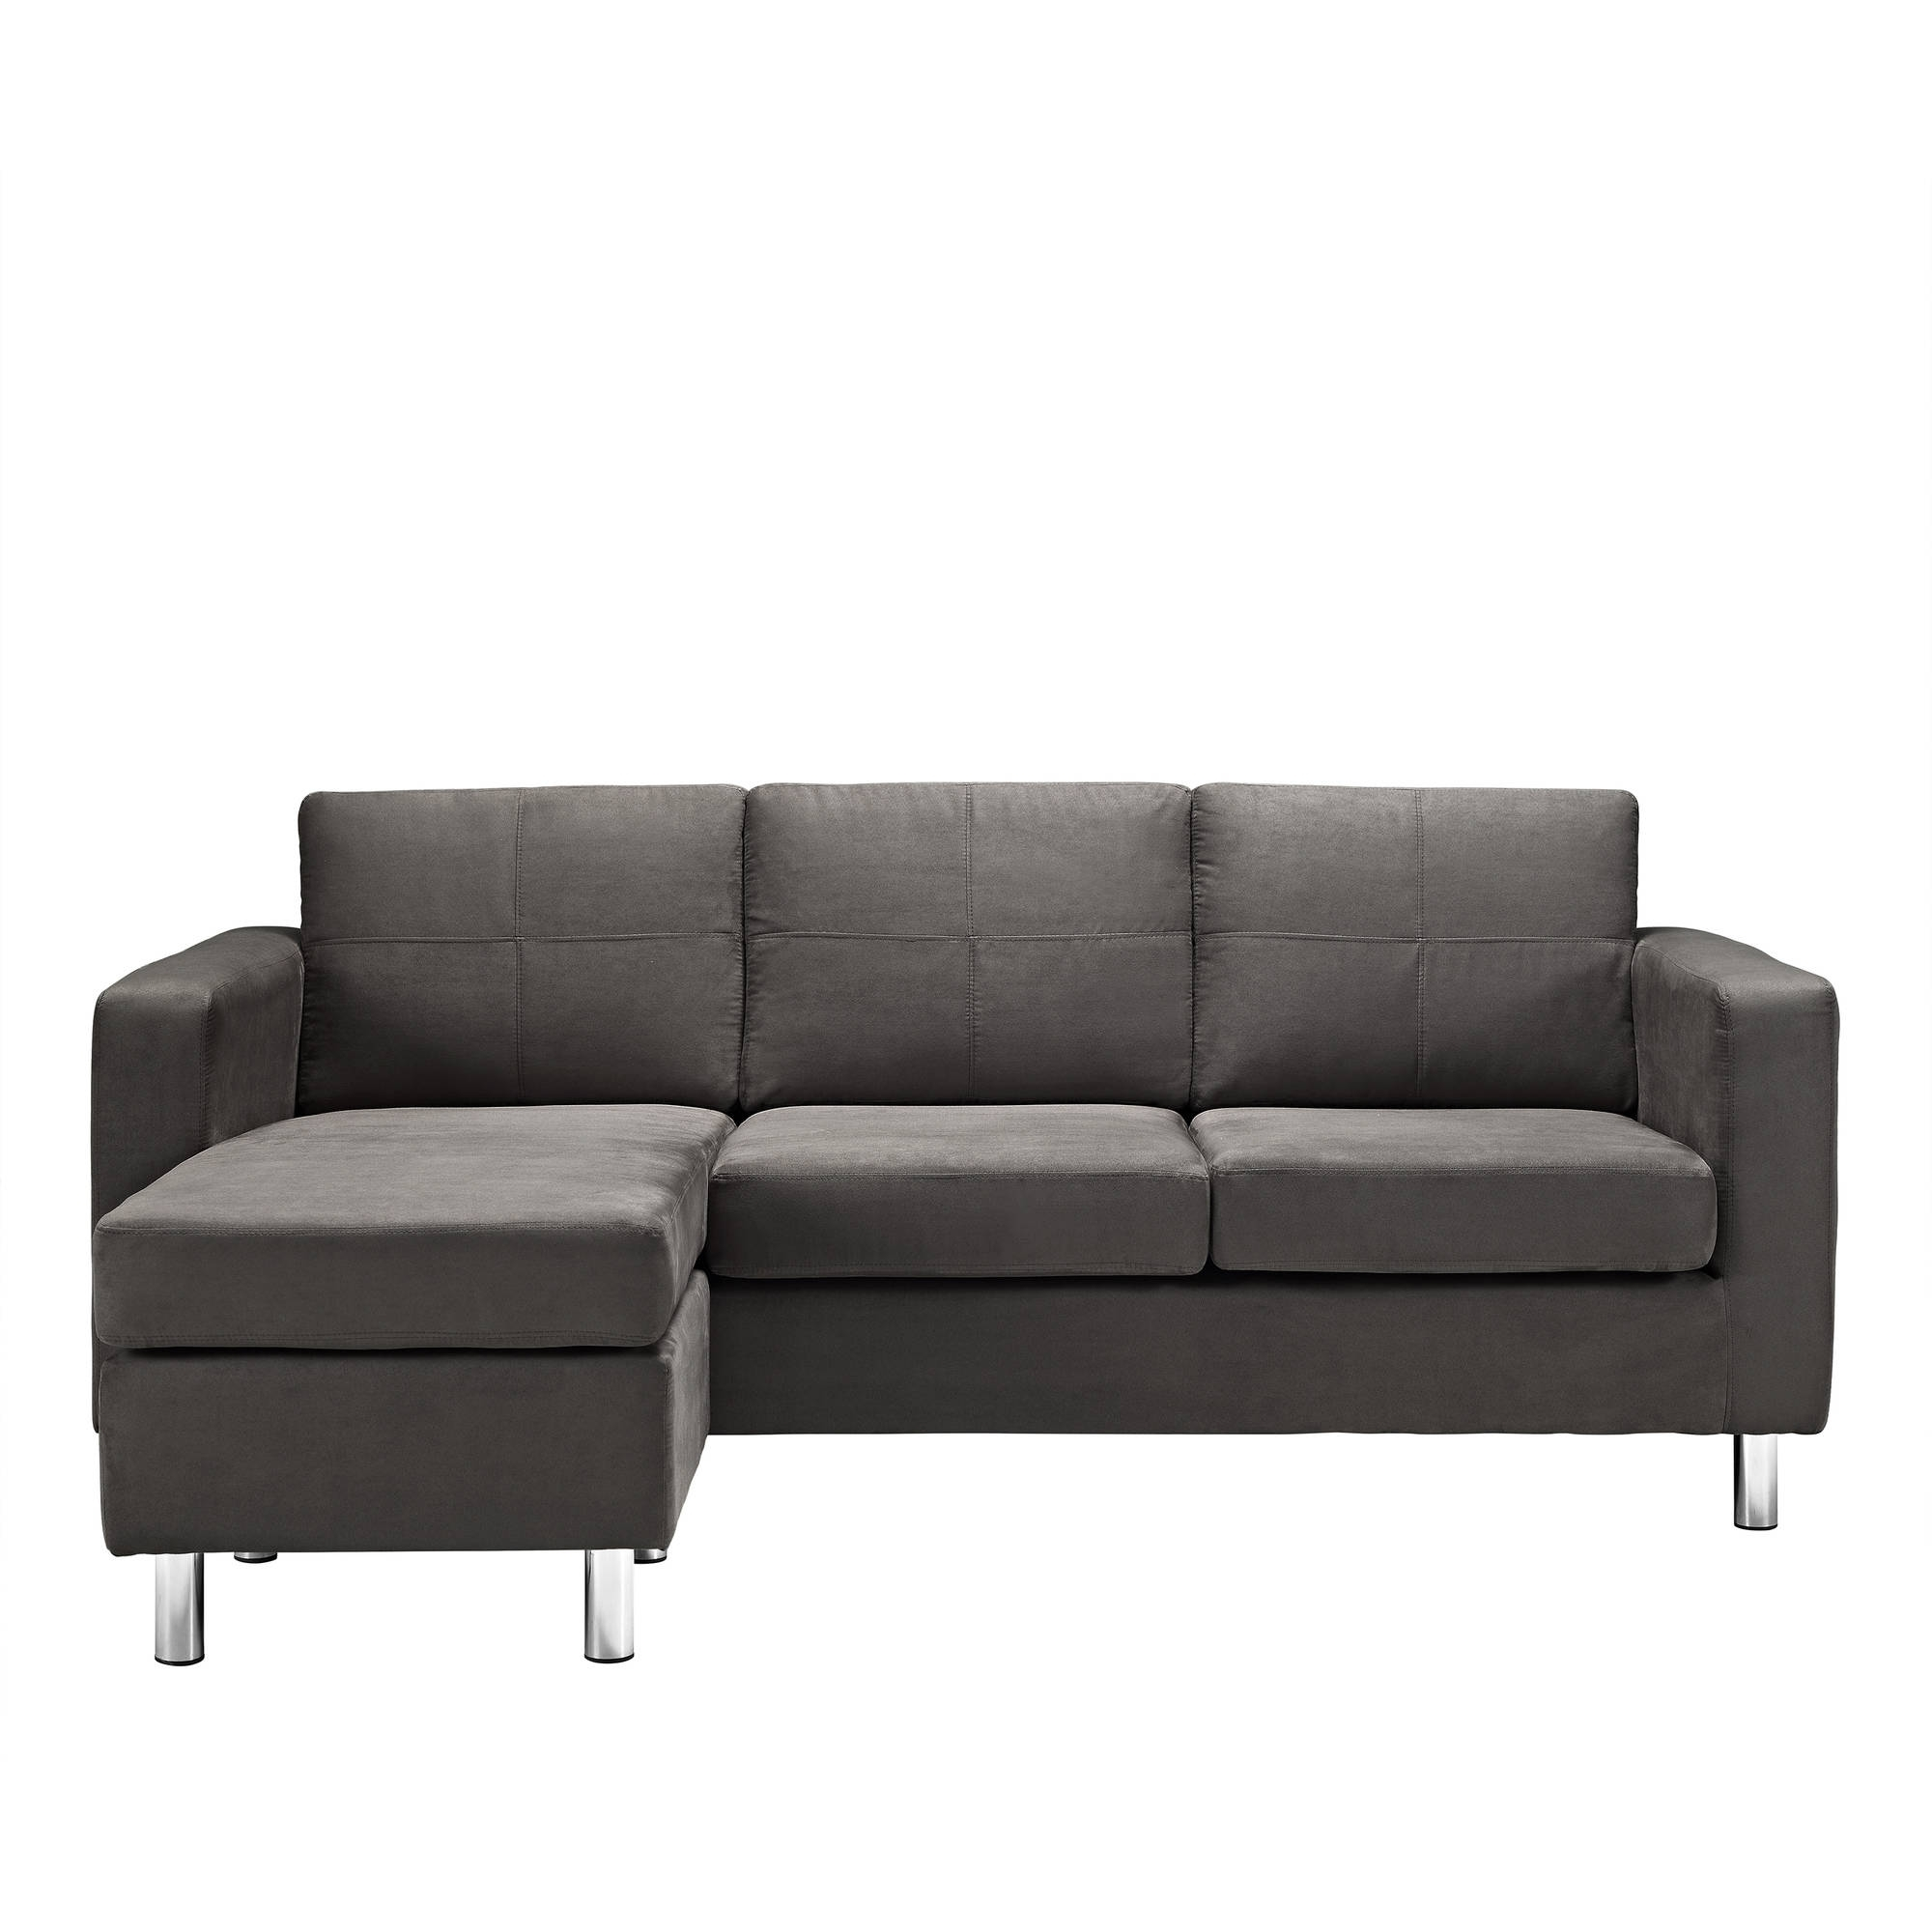 Most Recent Sectional Sofas For Small Spaces Within Choice (View 10 of 20)